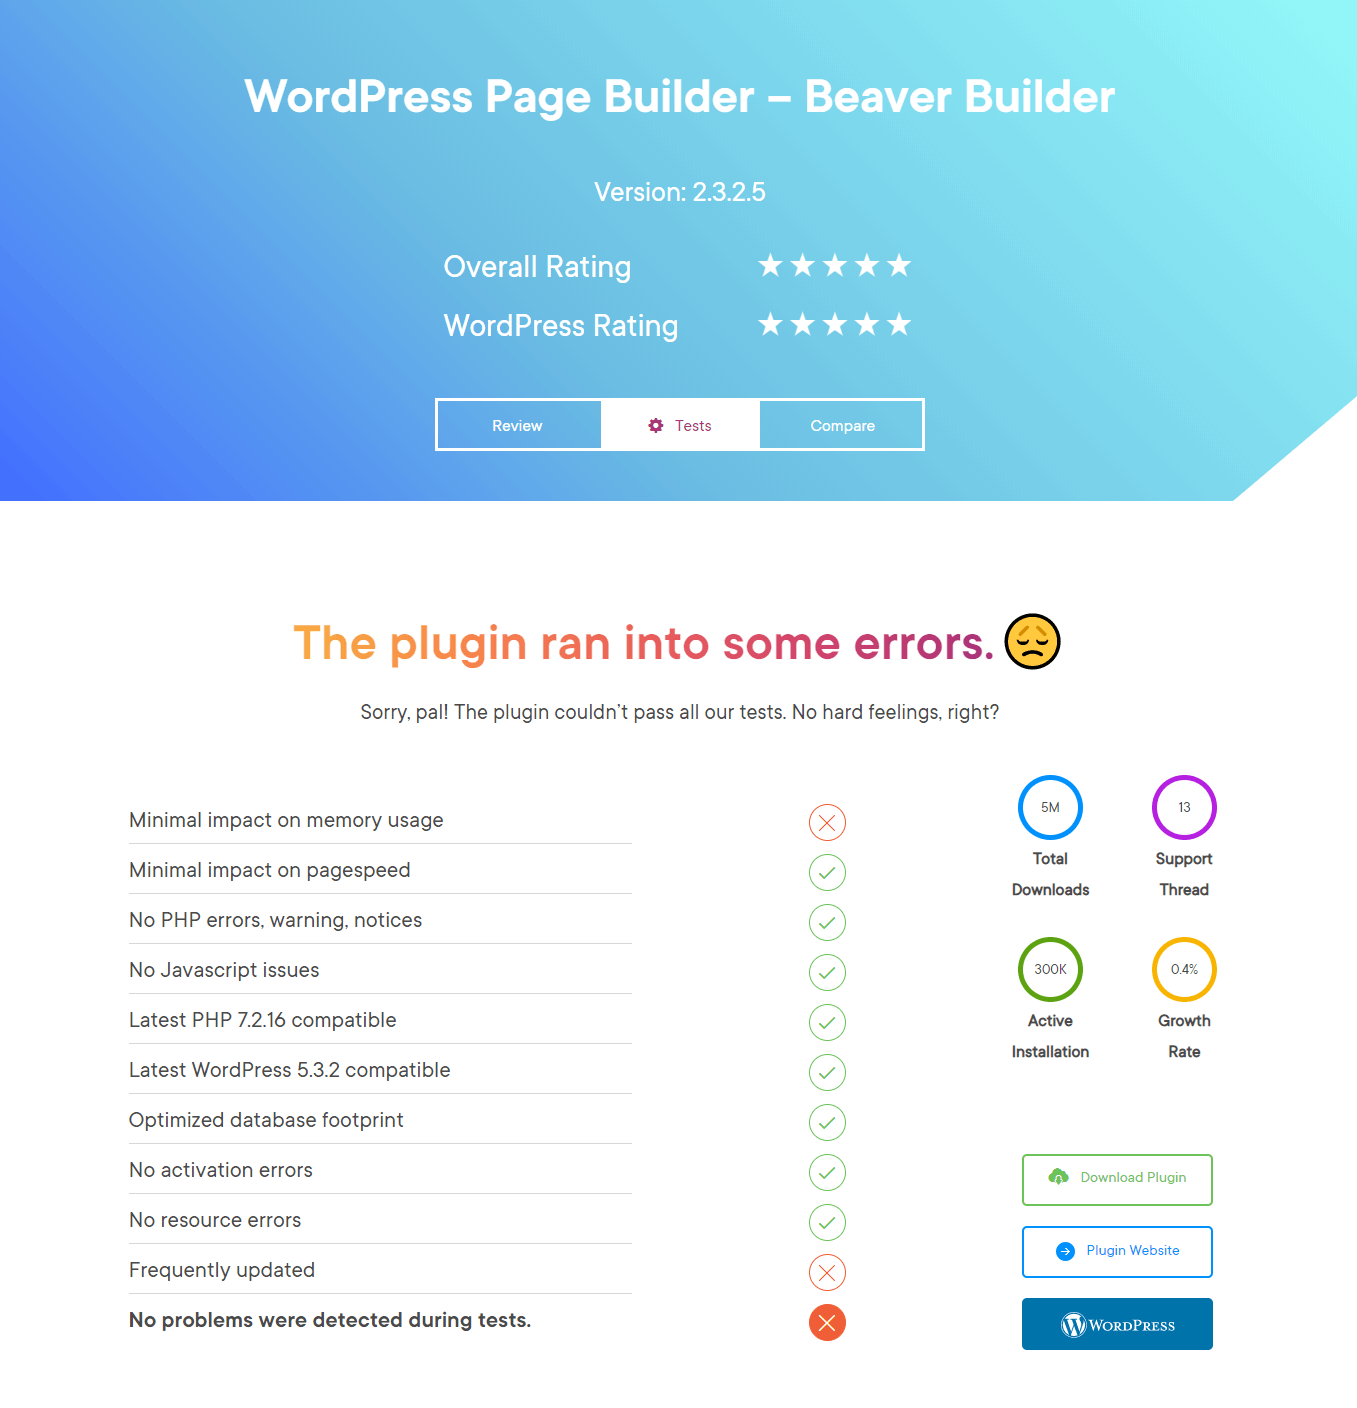 Beaver Builder review at a glance